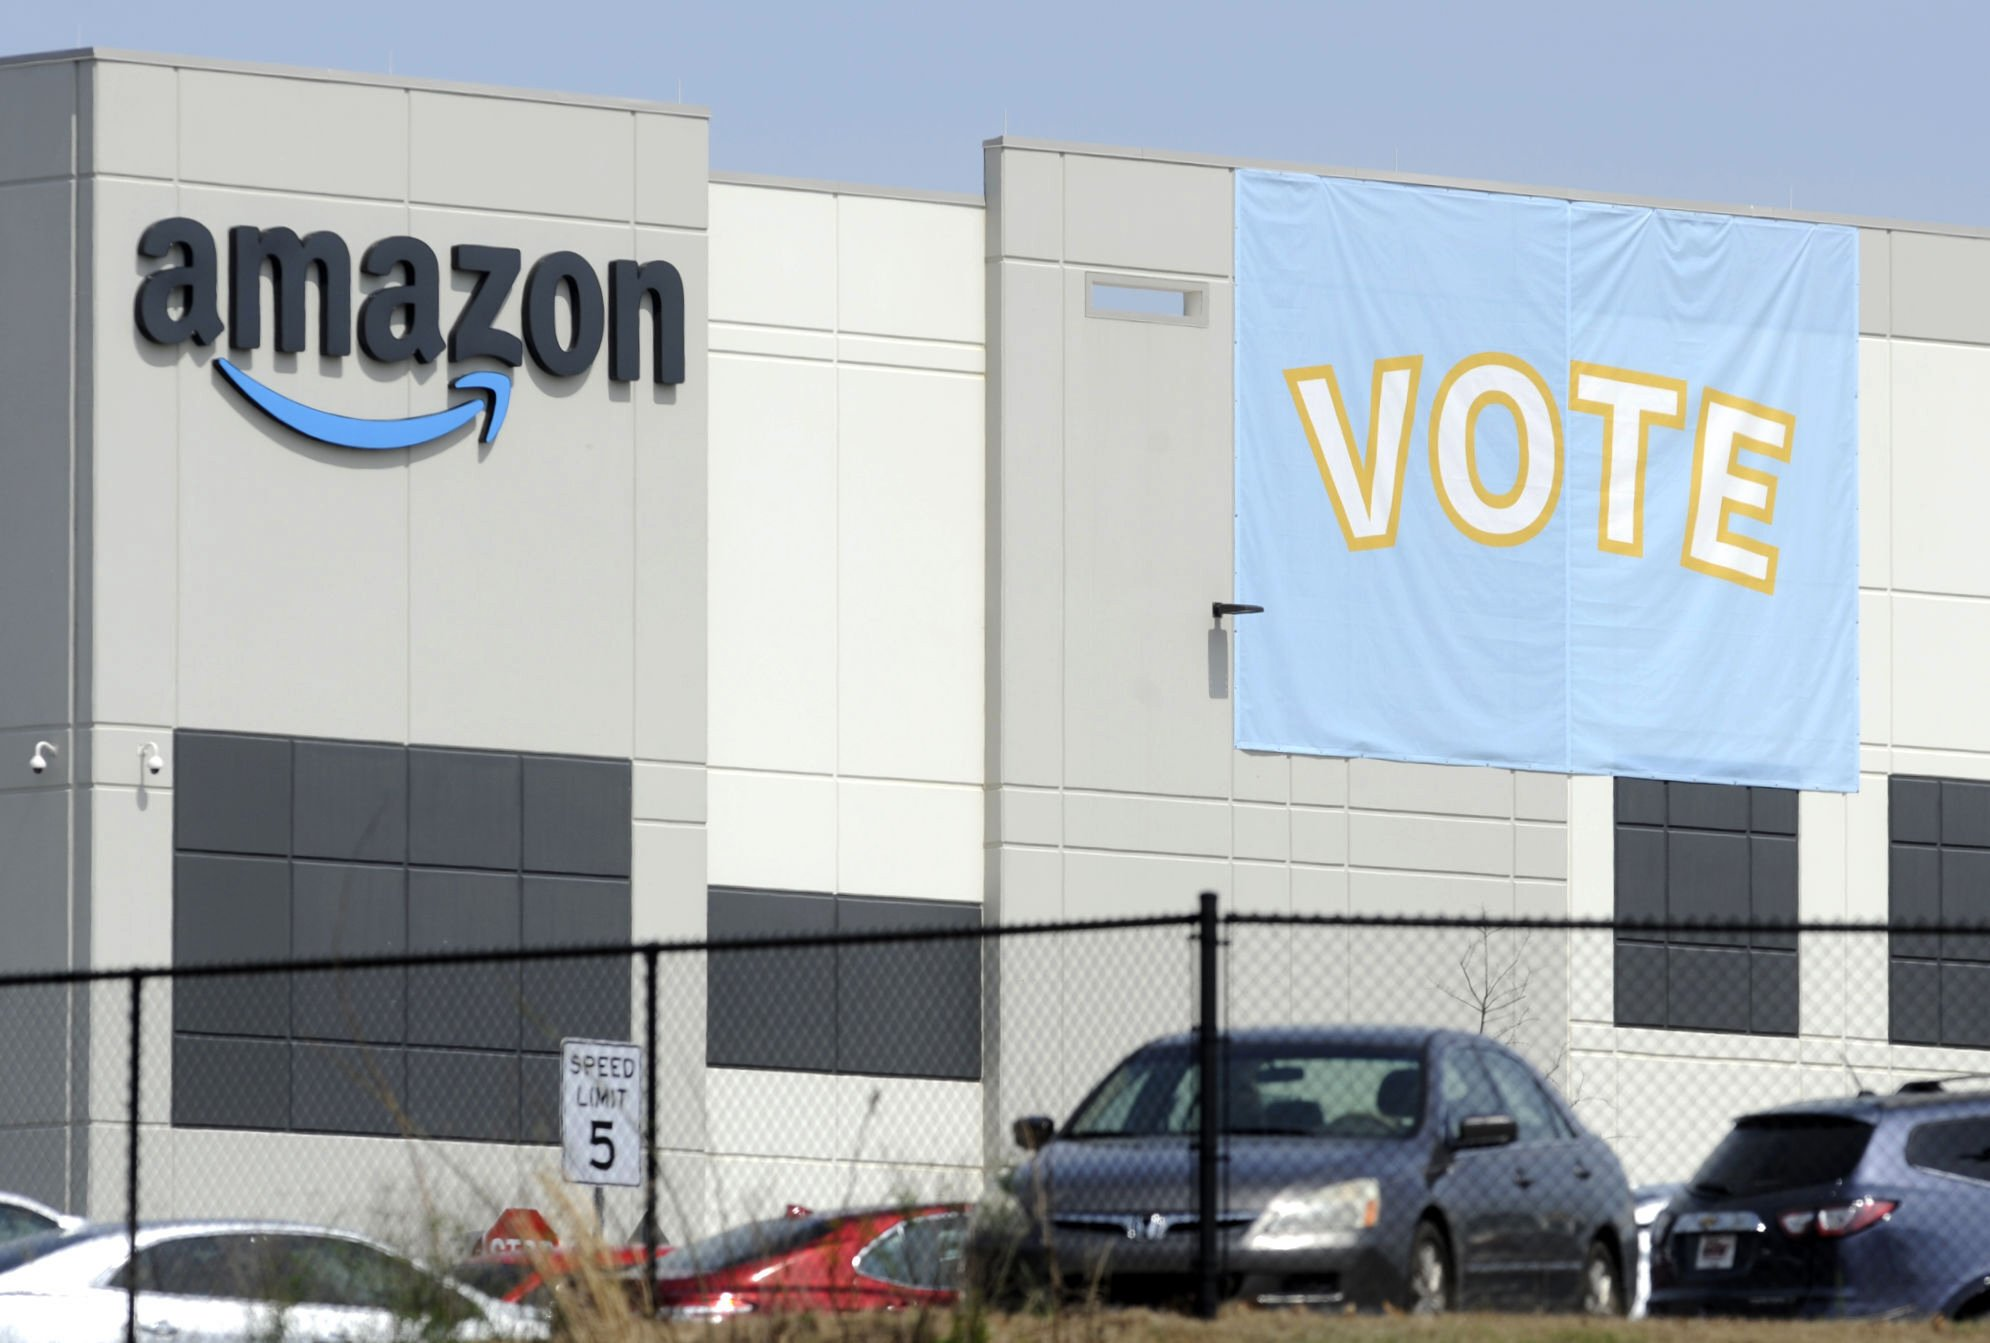 Amazon warehouse workers reject union bid in Alabama - Associated Press